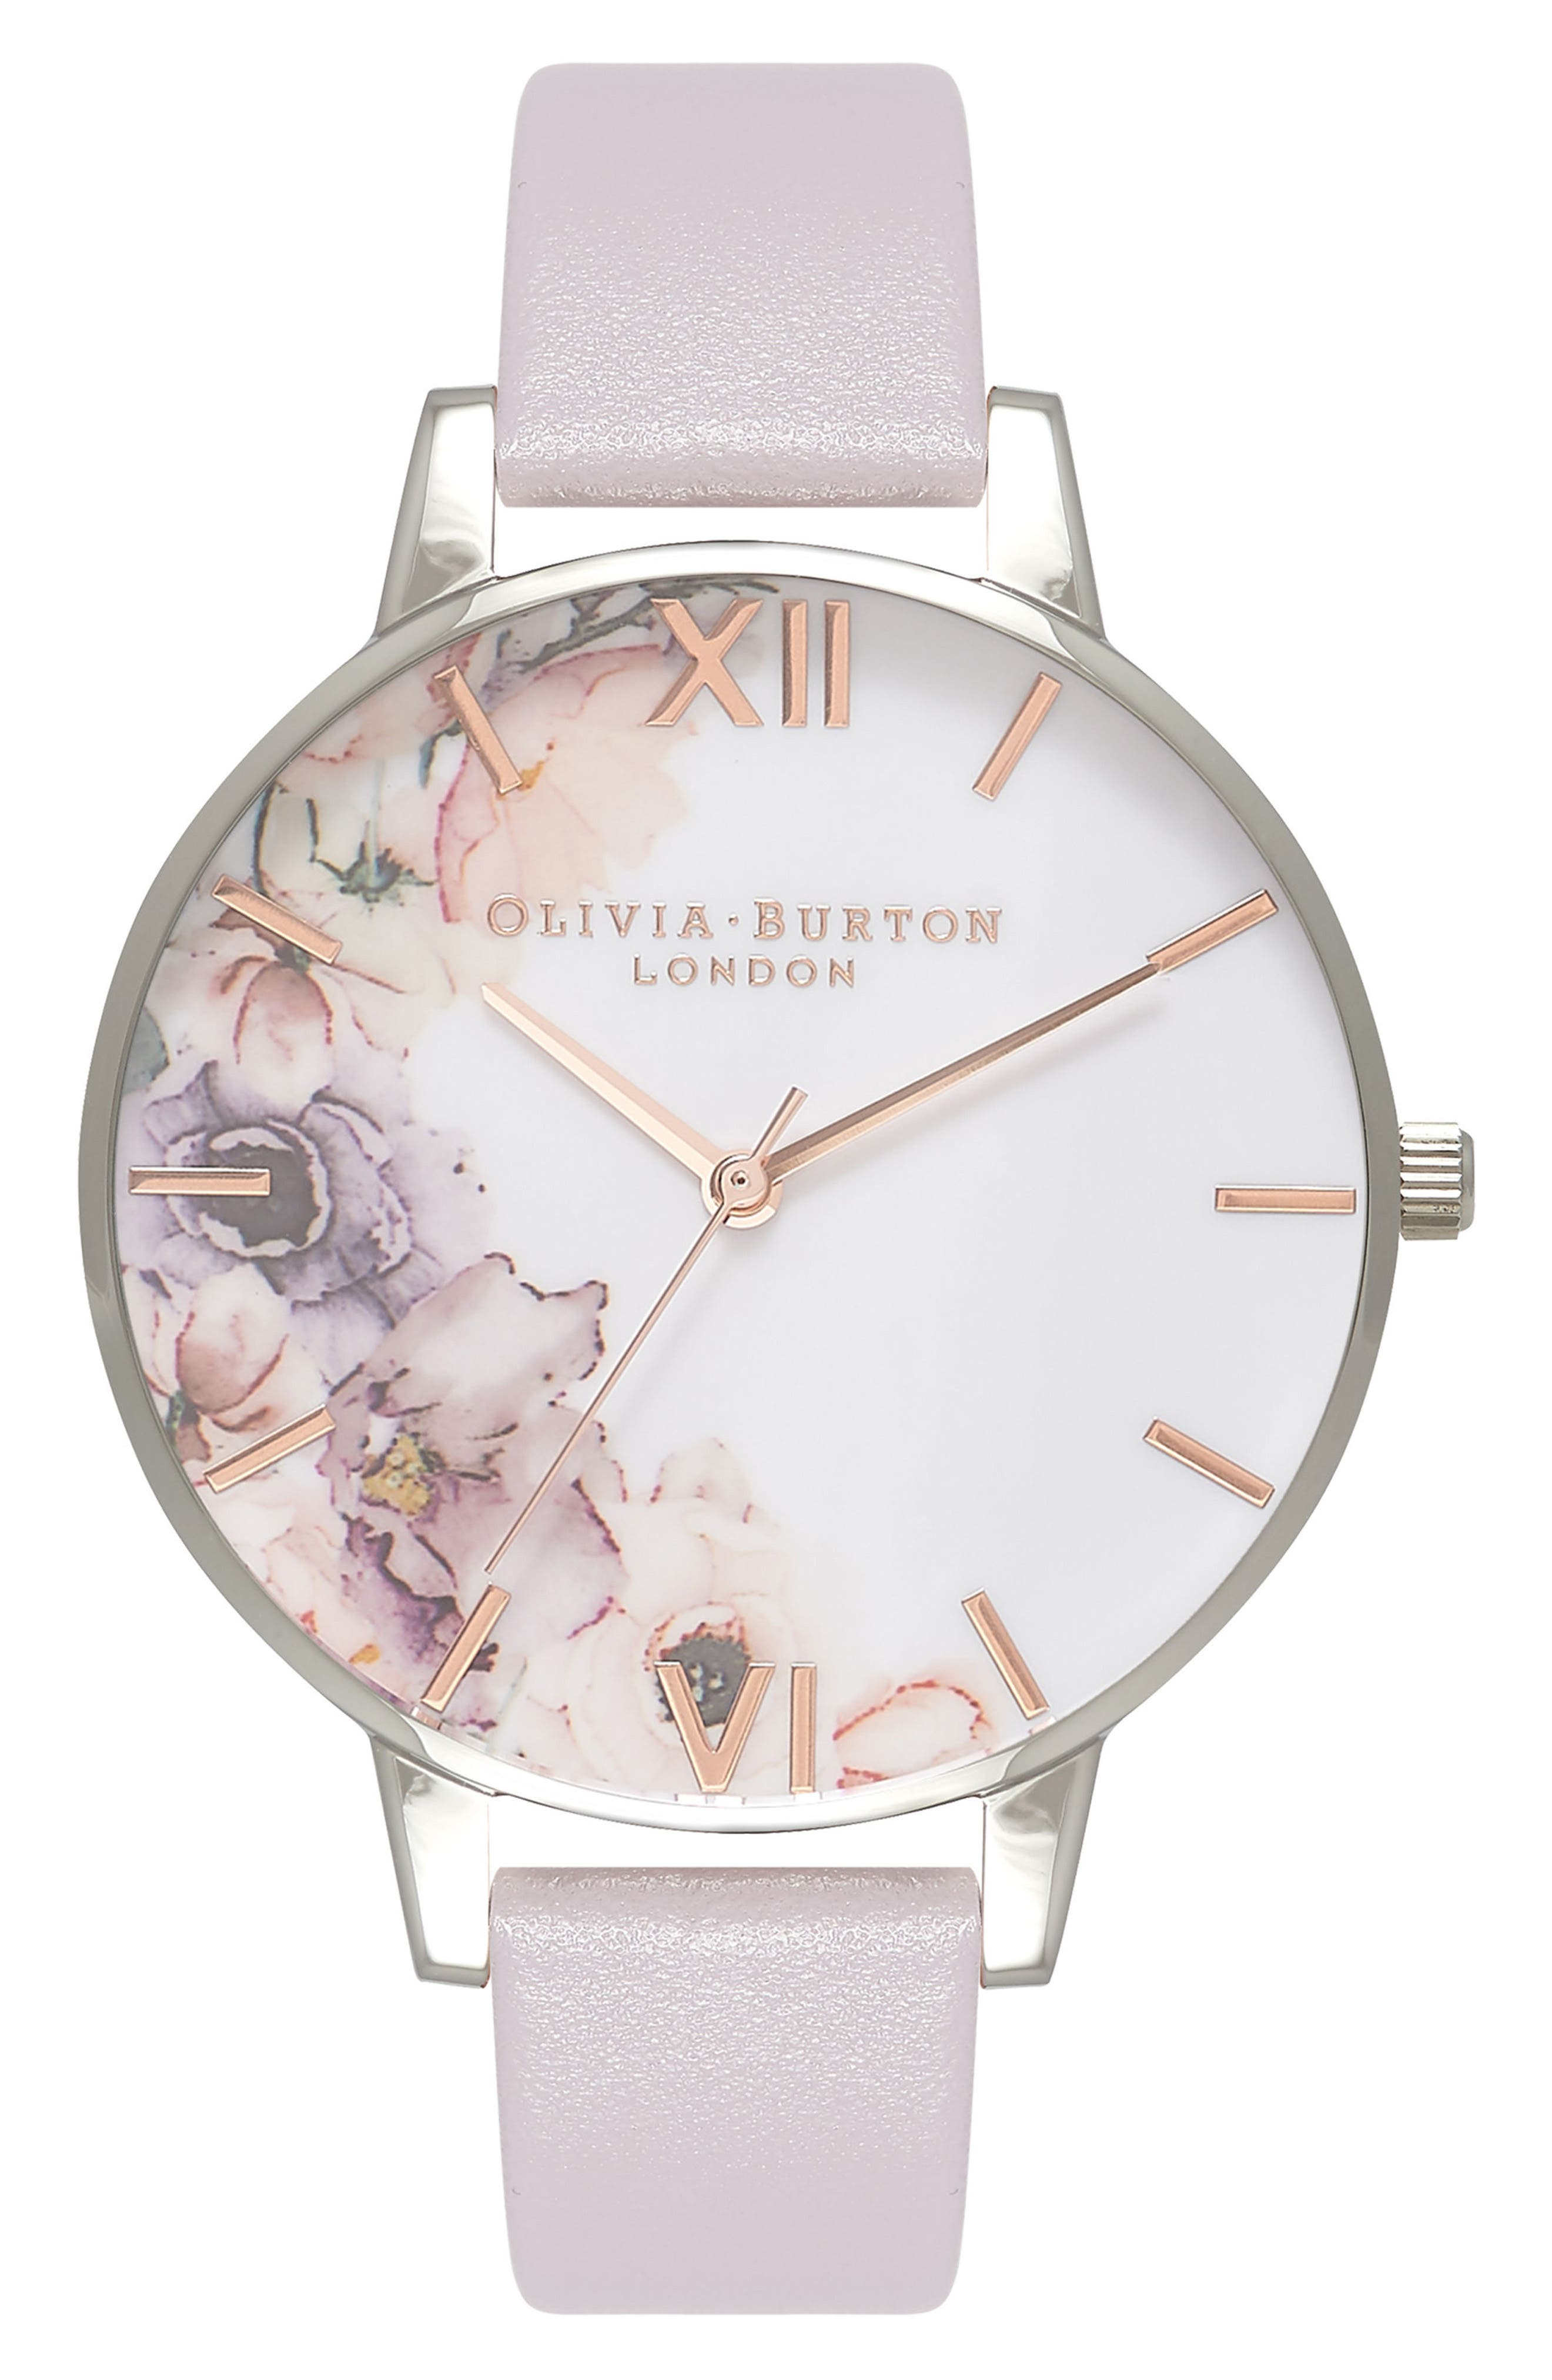 OLIVIA BURTON Watercolour Florals Leather Strap Watch, 38mm, Main, color, GREY/ WHITE/ FLORAL/ SILVER